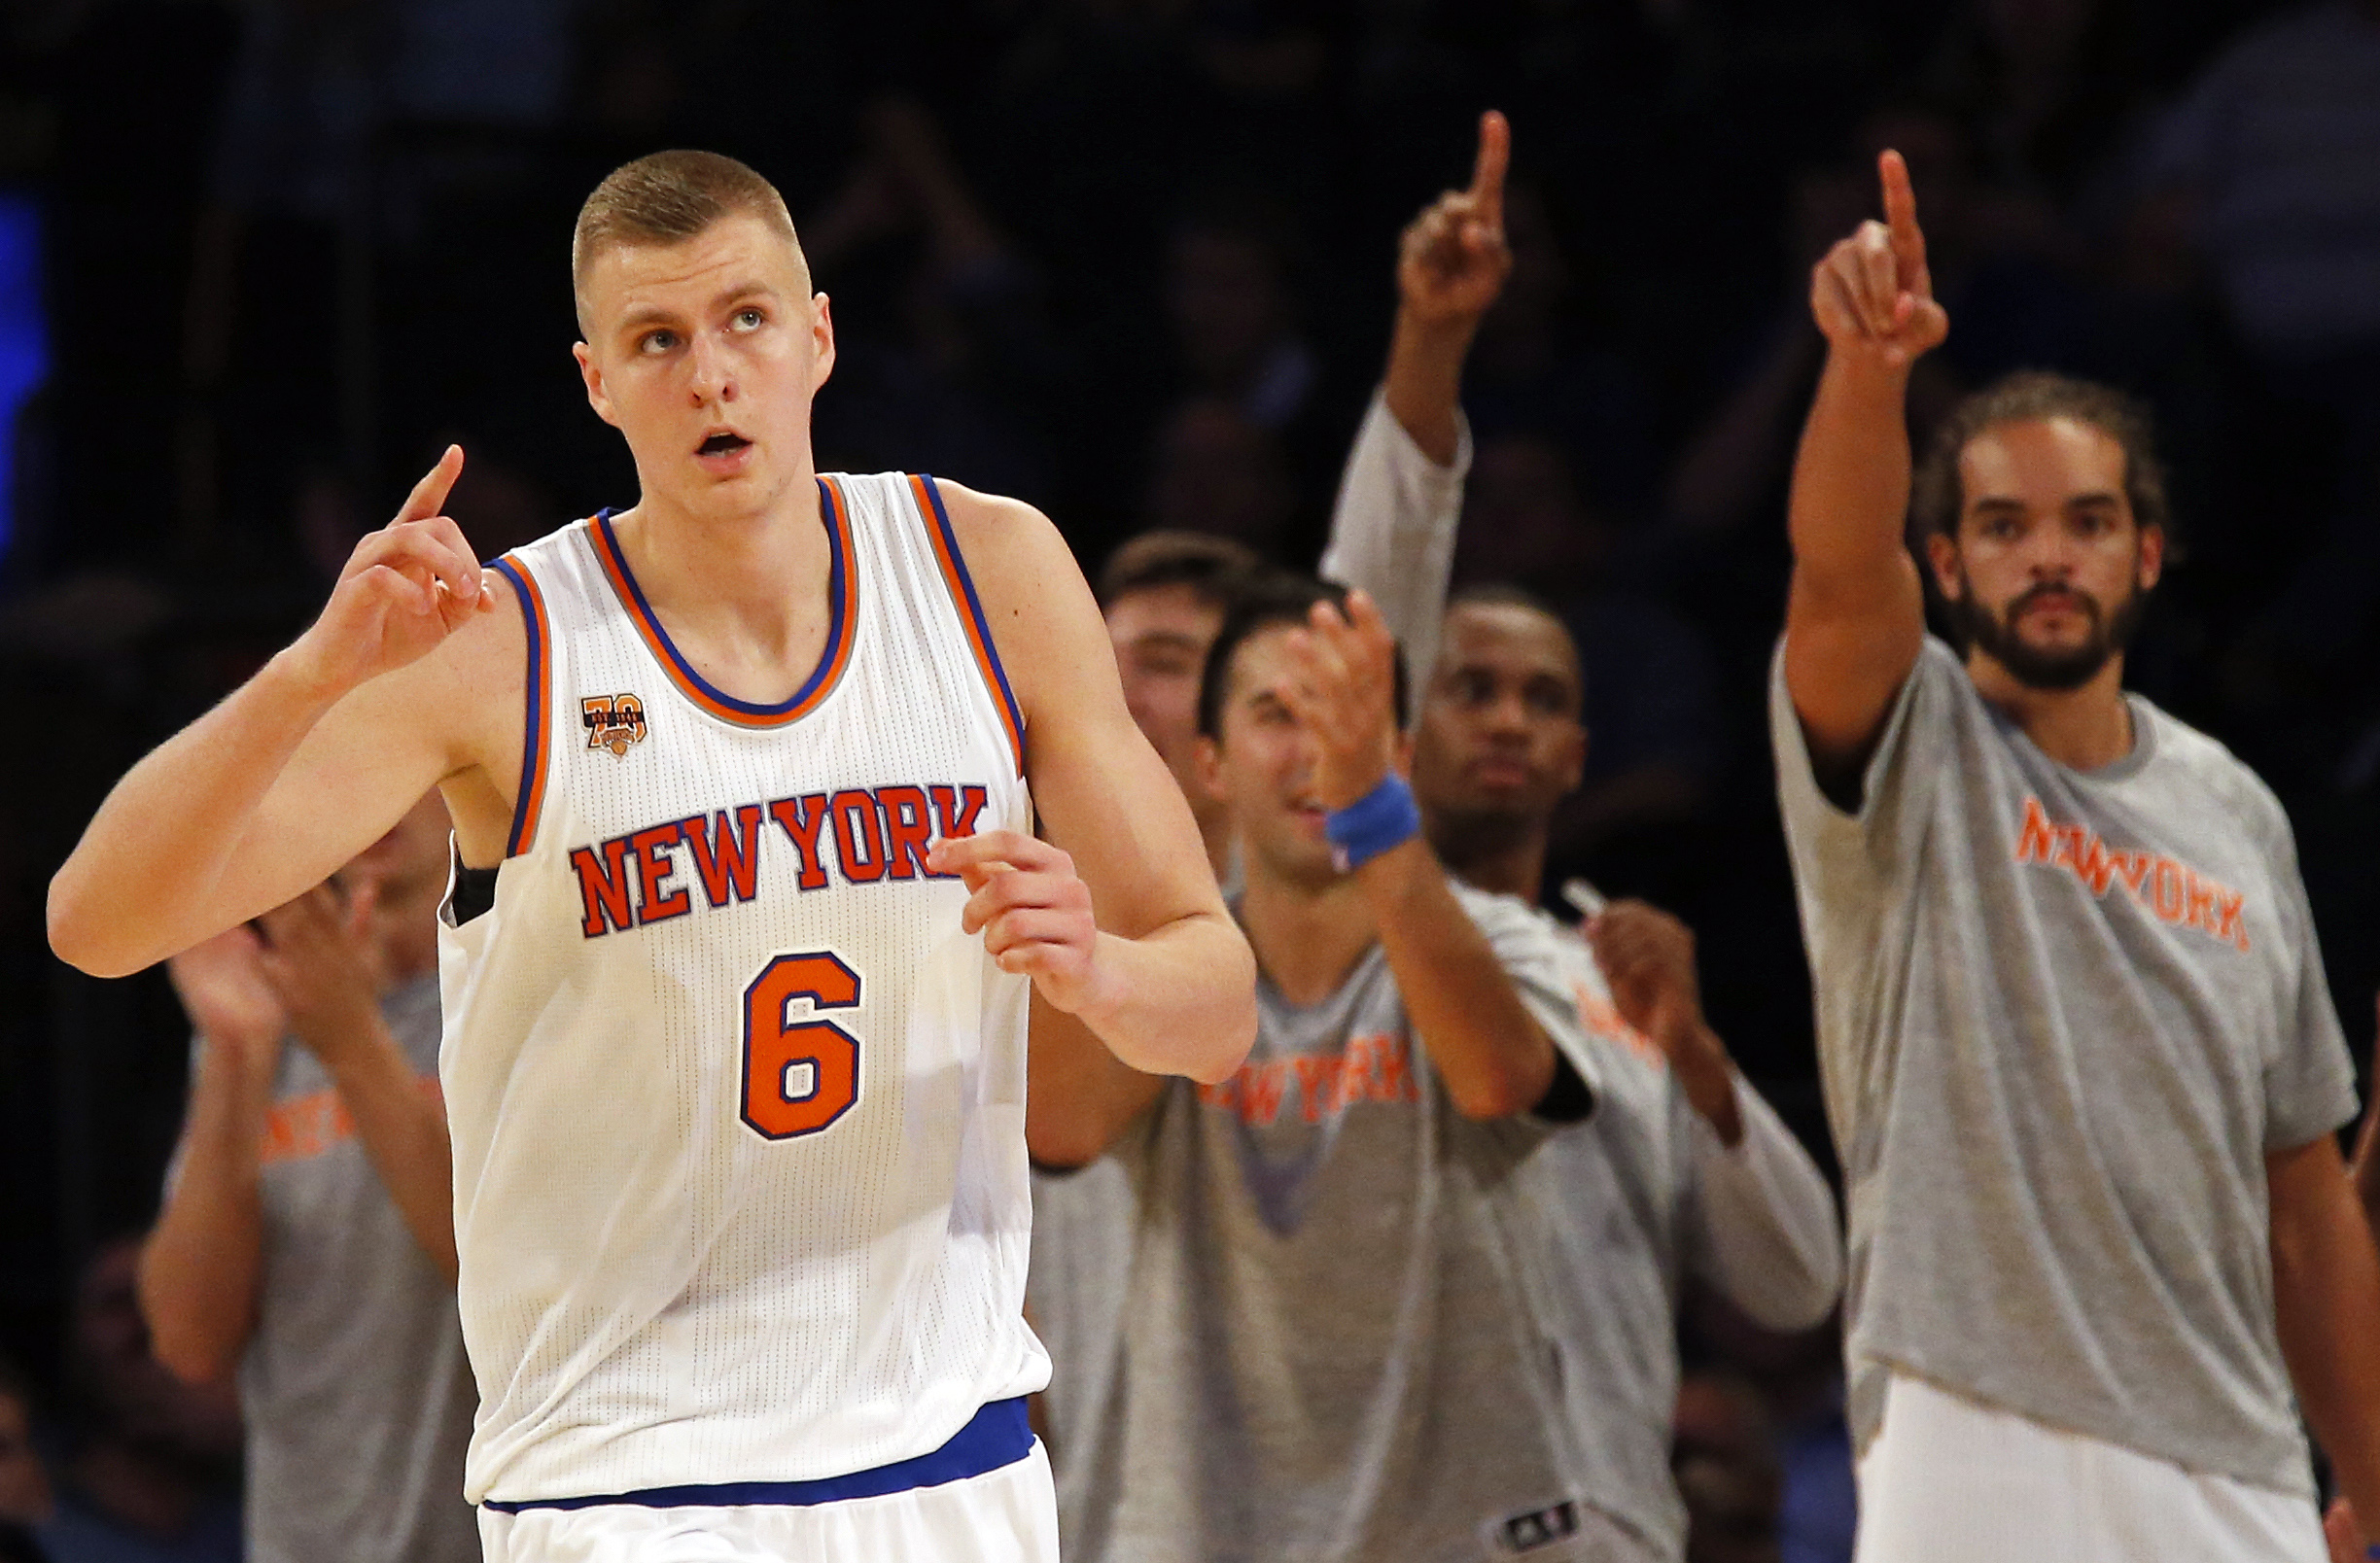 Oct 8, 2016; New York, NY, USA; New York Knicks forward Kristaps Porzingis (6) reacts after scoring a basket against the Brooklyn Nets during the second half at Madison Square Garden. Mandatory Credit: Adam Hunger-USA TODAY Sports